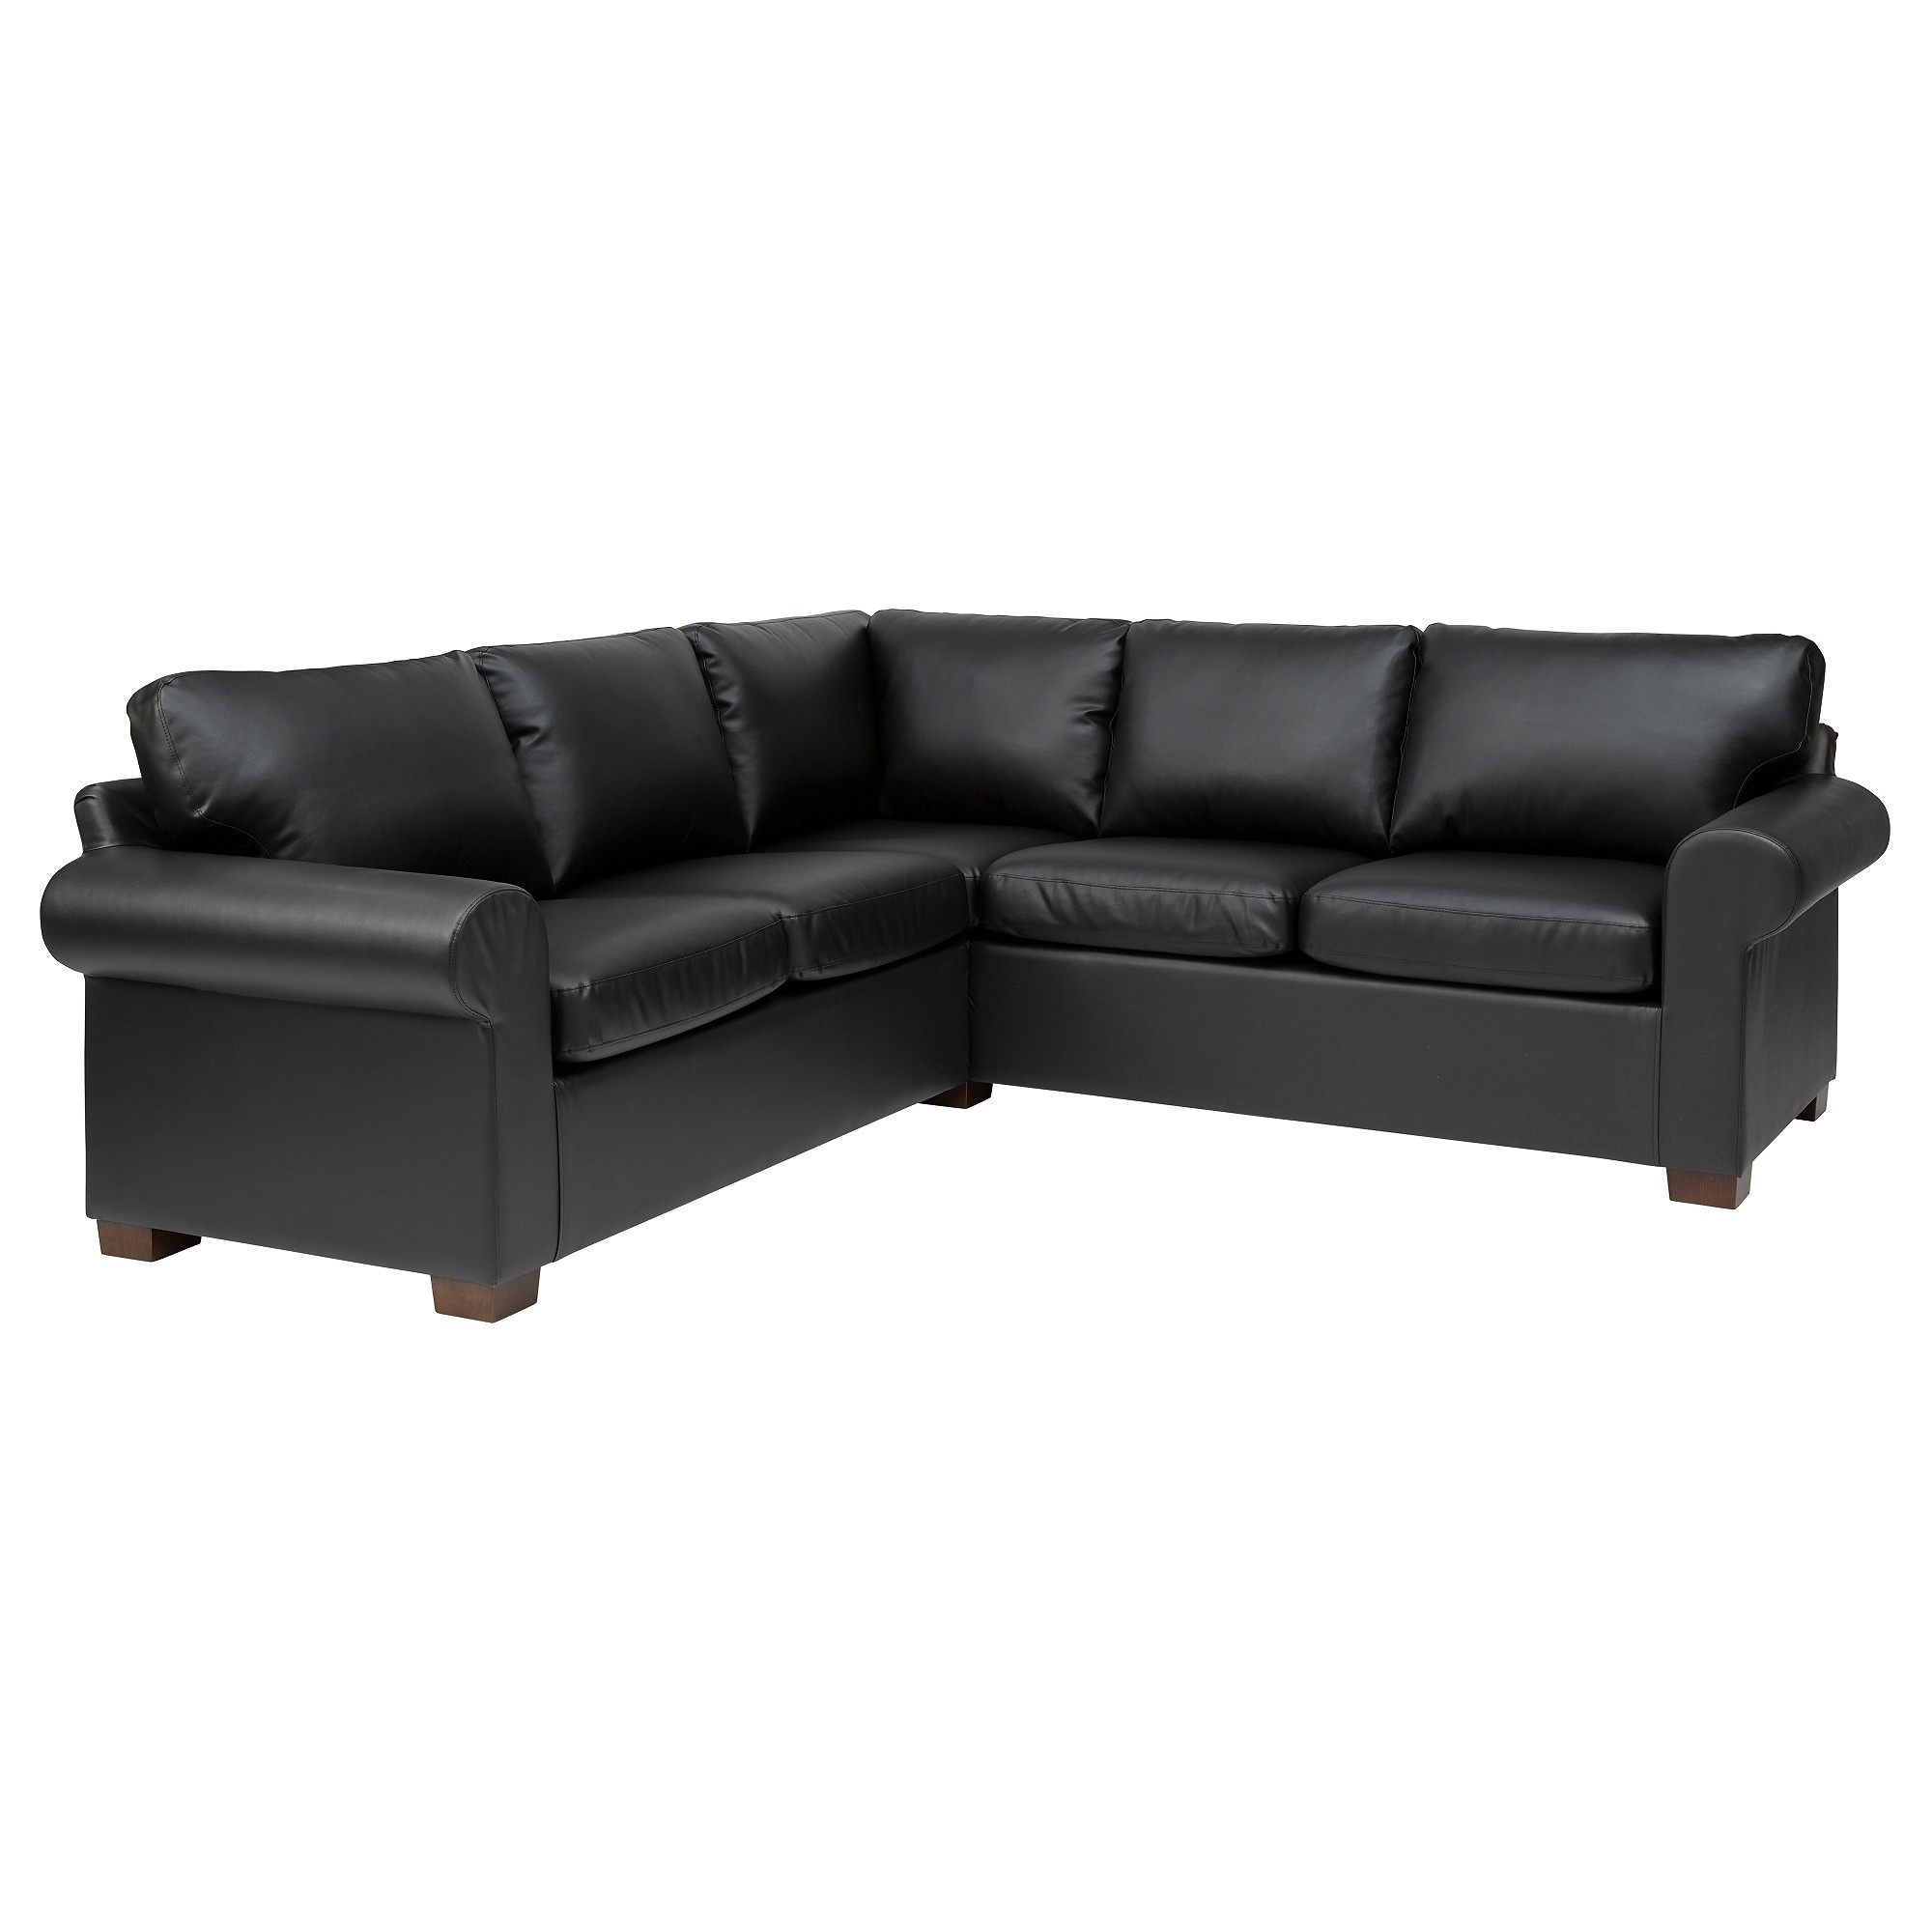 Faux leather sectional sofa with chaise buchannan faux for Black leather chaise sofa